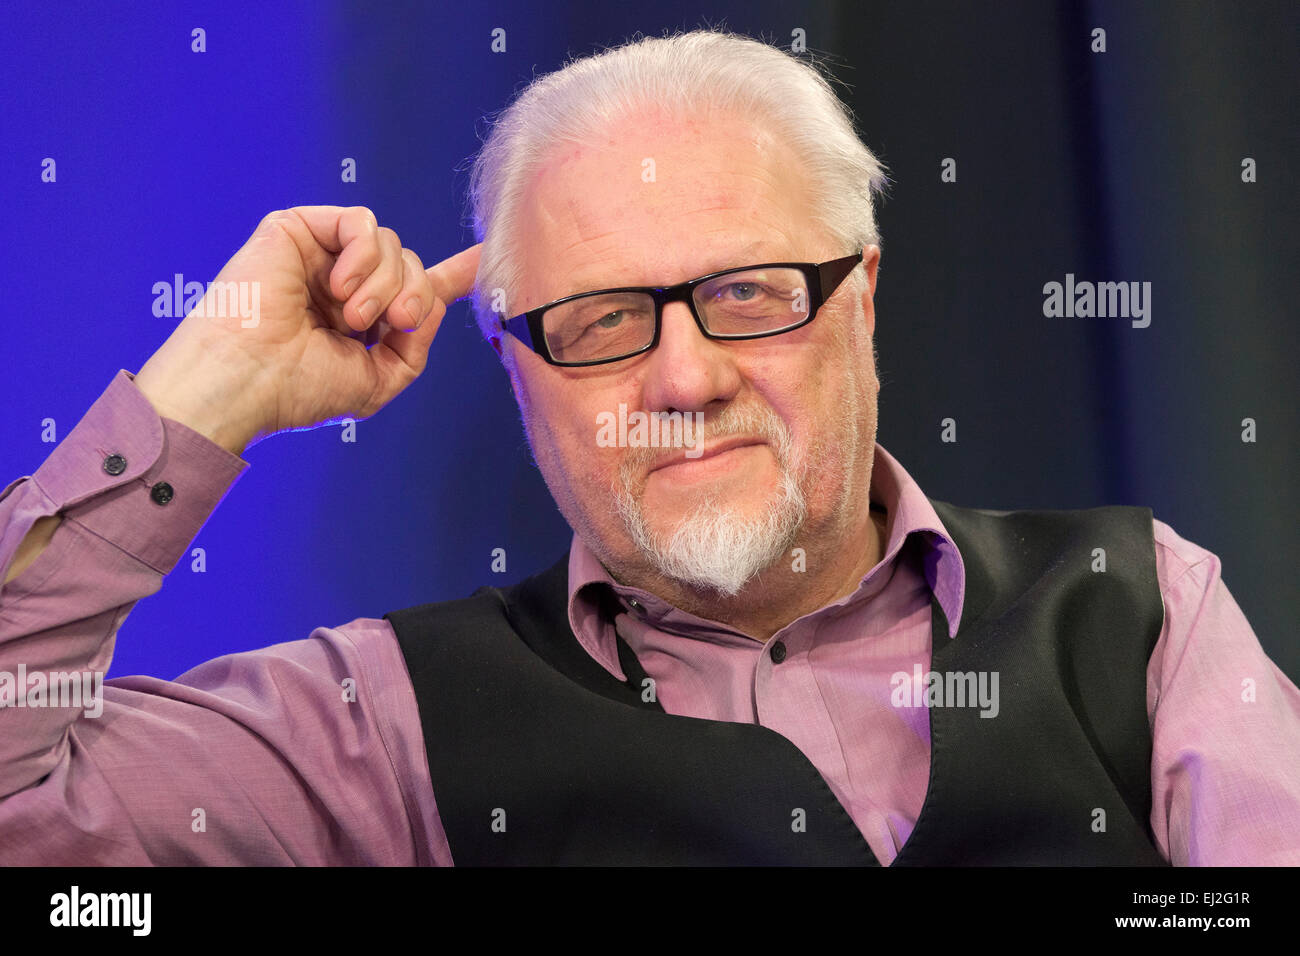 Walsall, West Midlands, UK. 20 March 2015. Dick Fiddy British Film Institute (BFI) writer and researcher at a recording - Stock Image